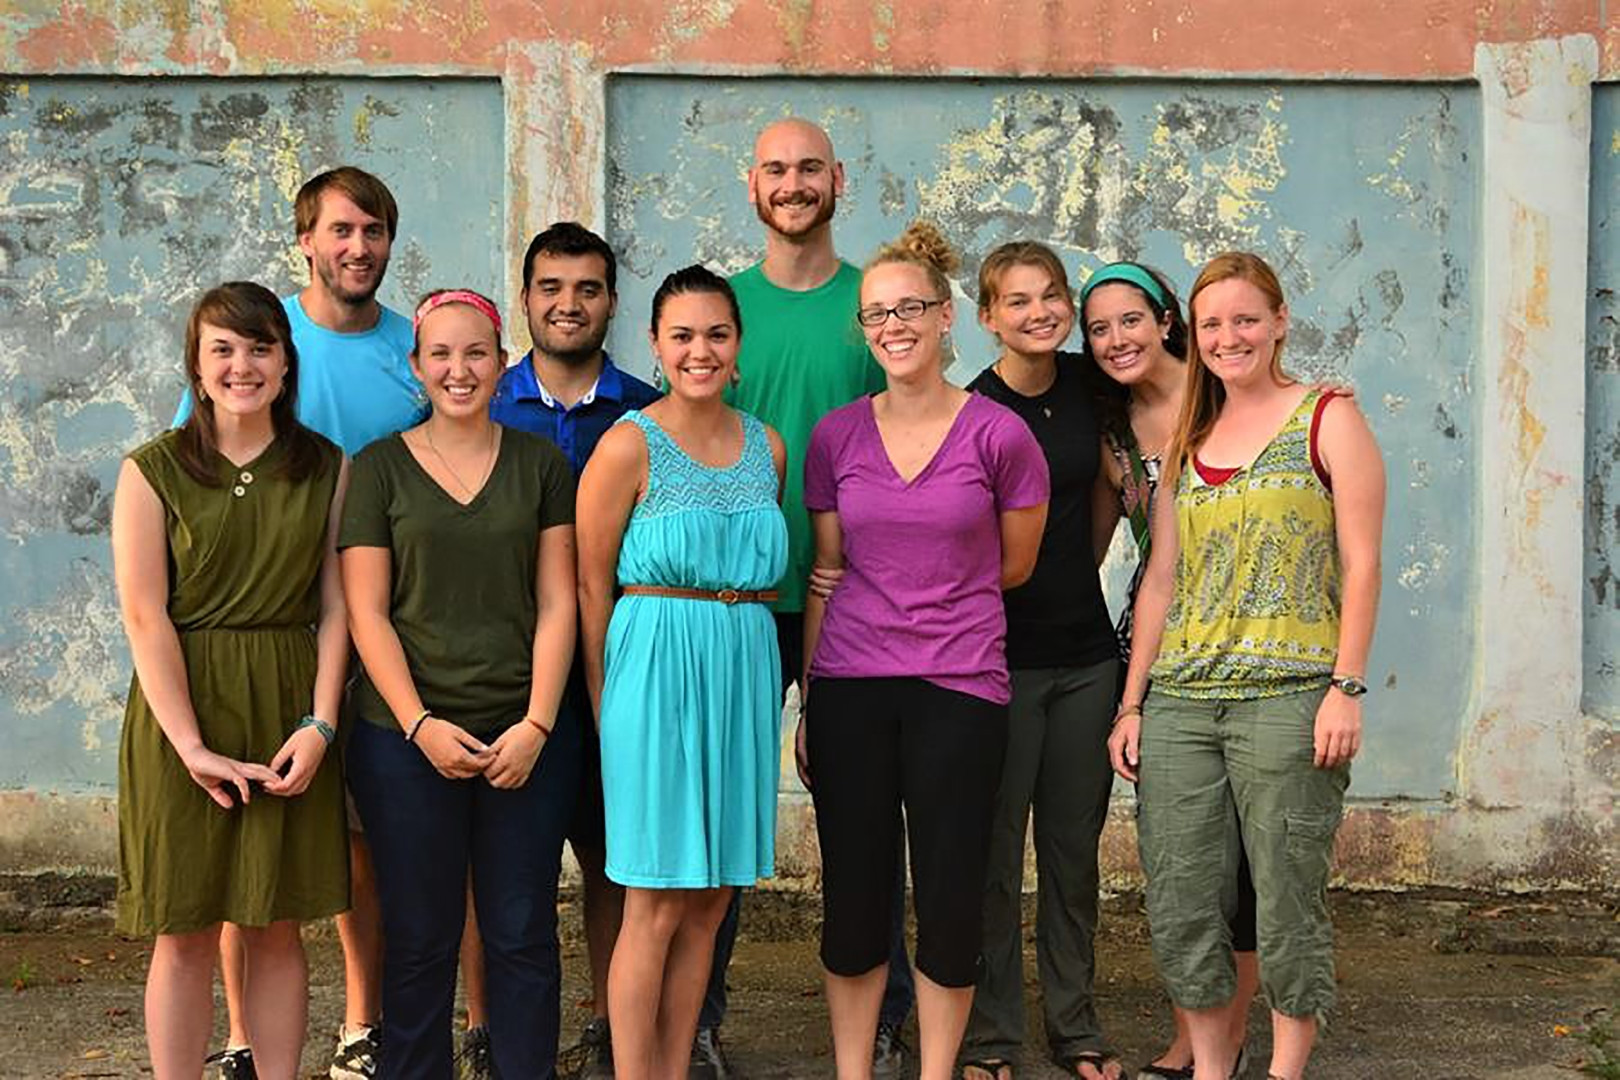 Volunteers from the United States who taught at the Bilingual School